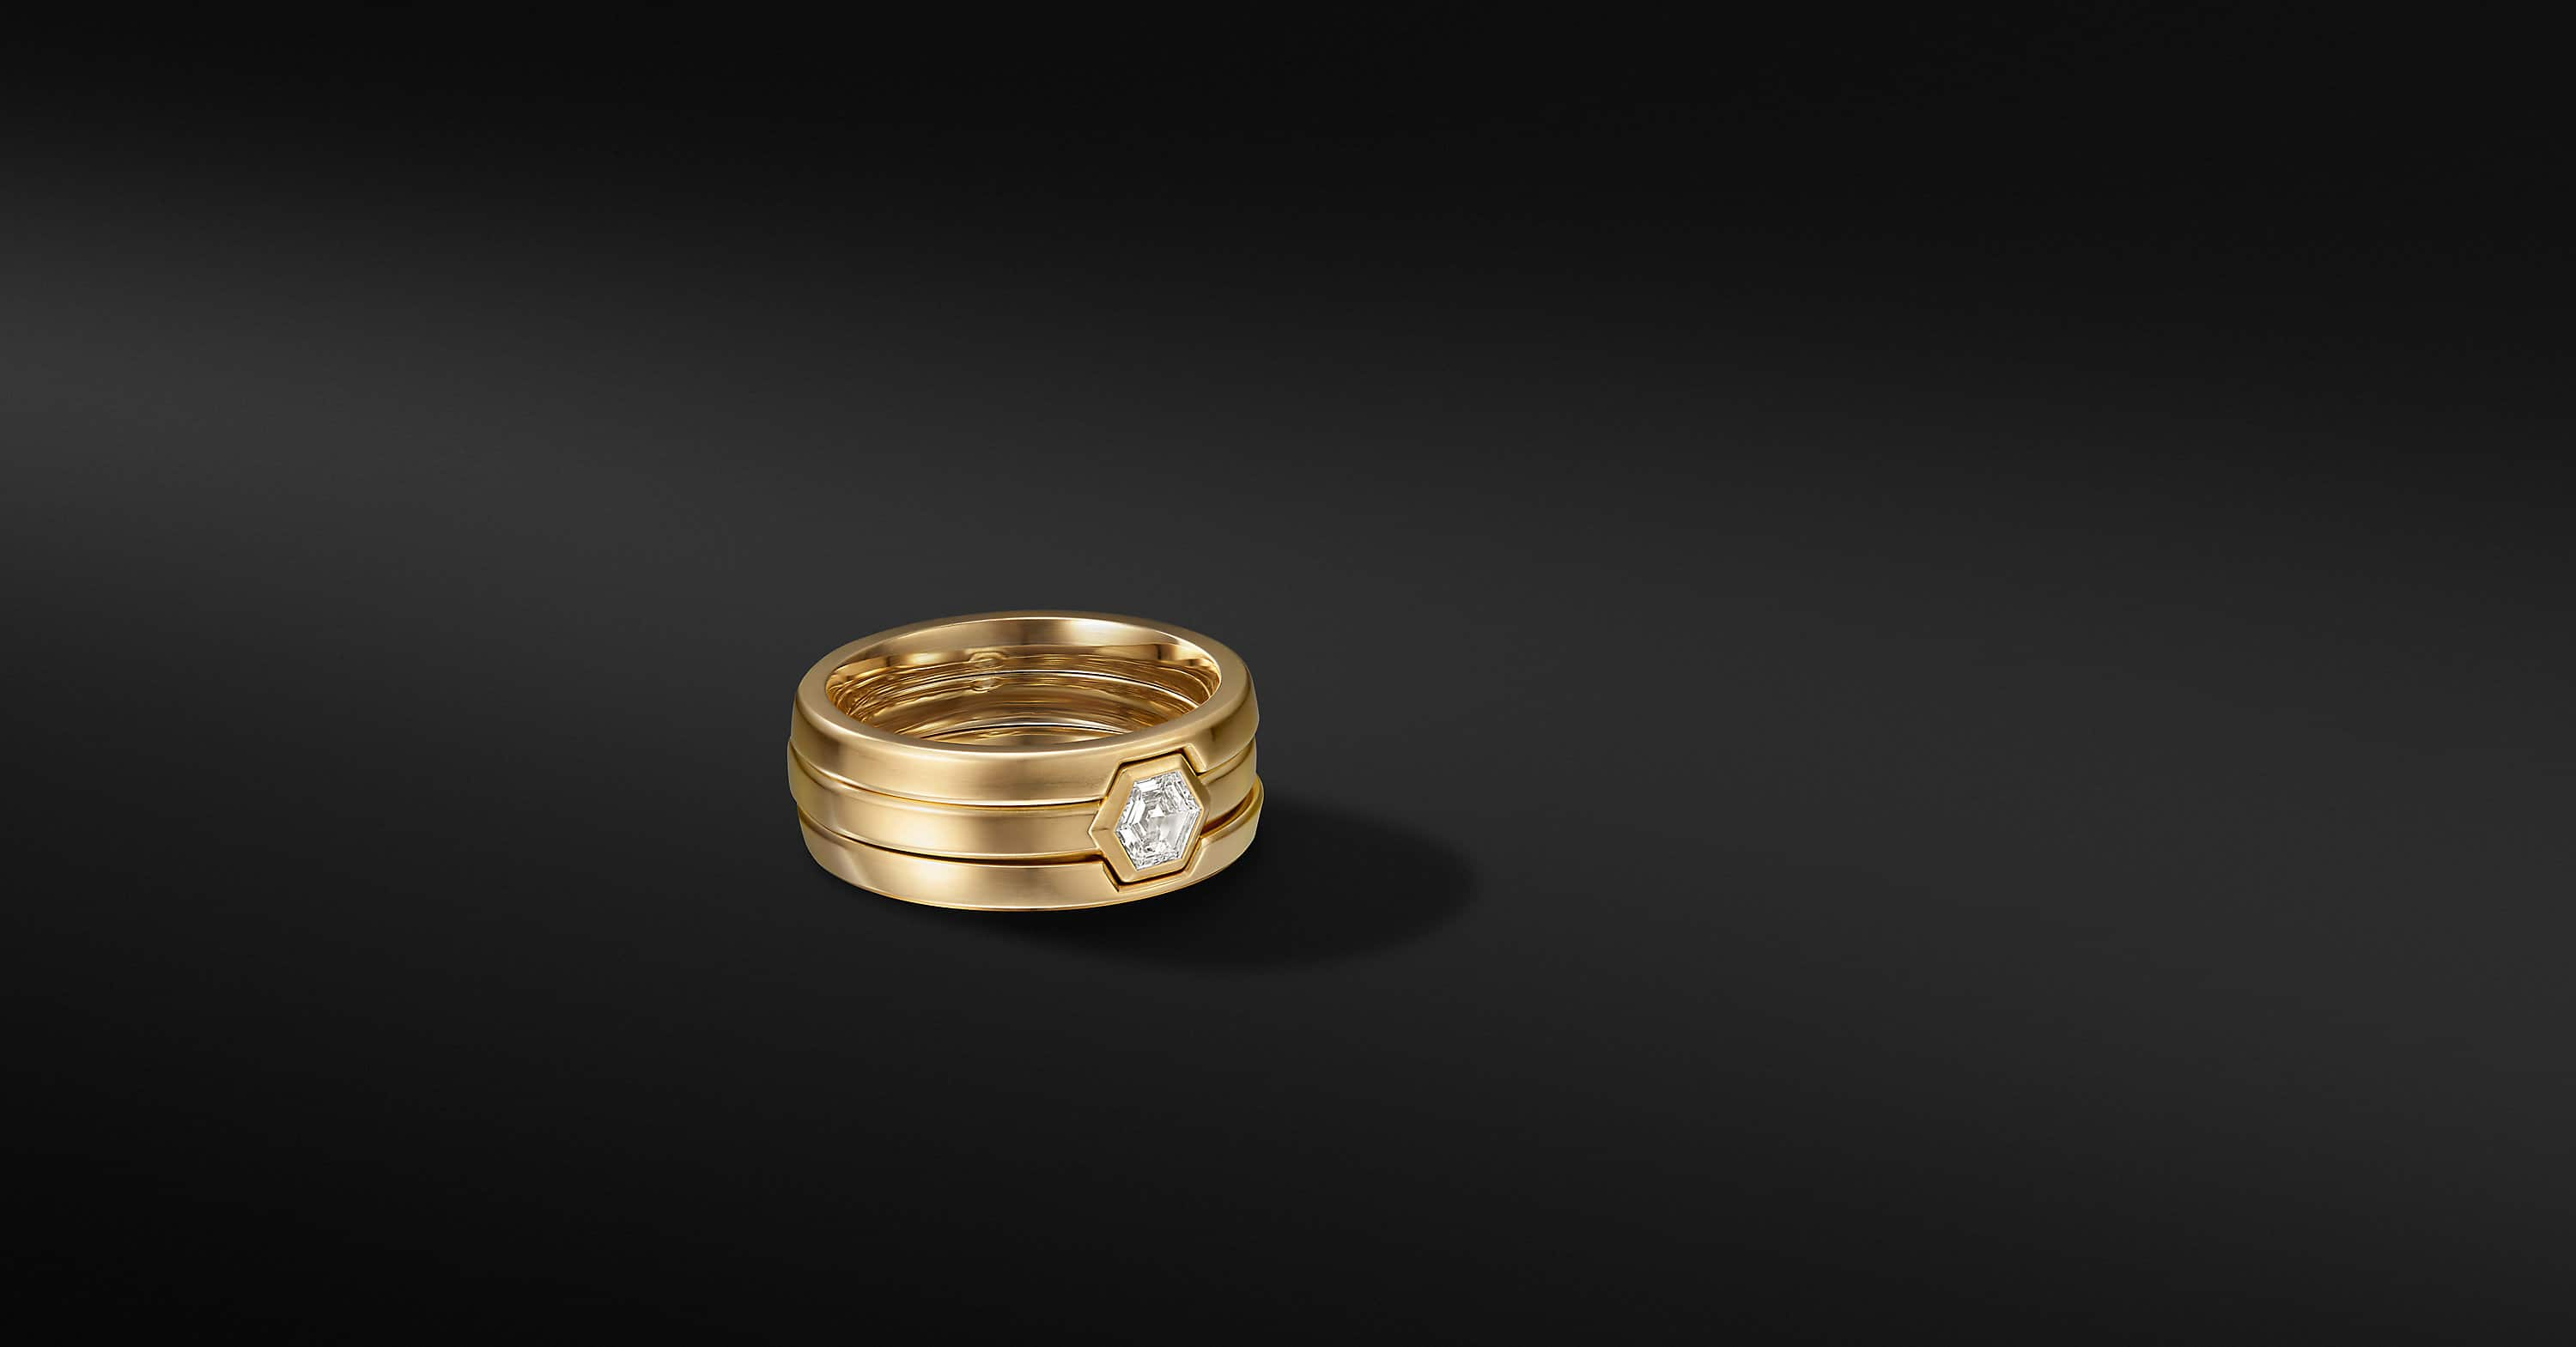 Nesting Band Ring in 18K Yellow Gold, 10mm